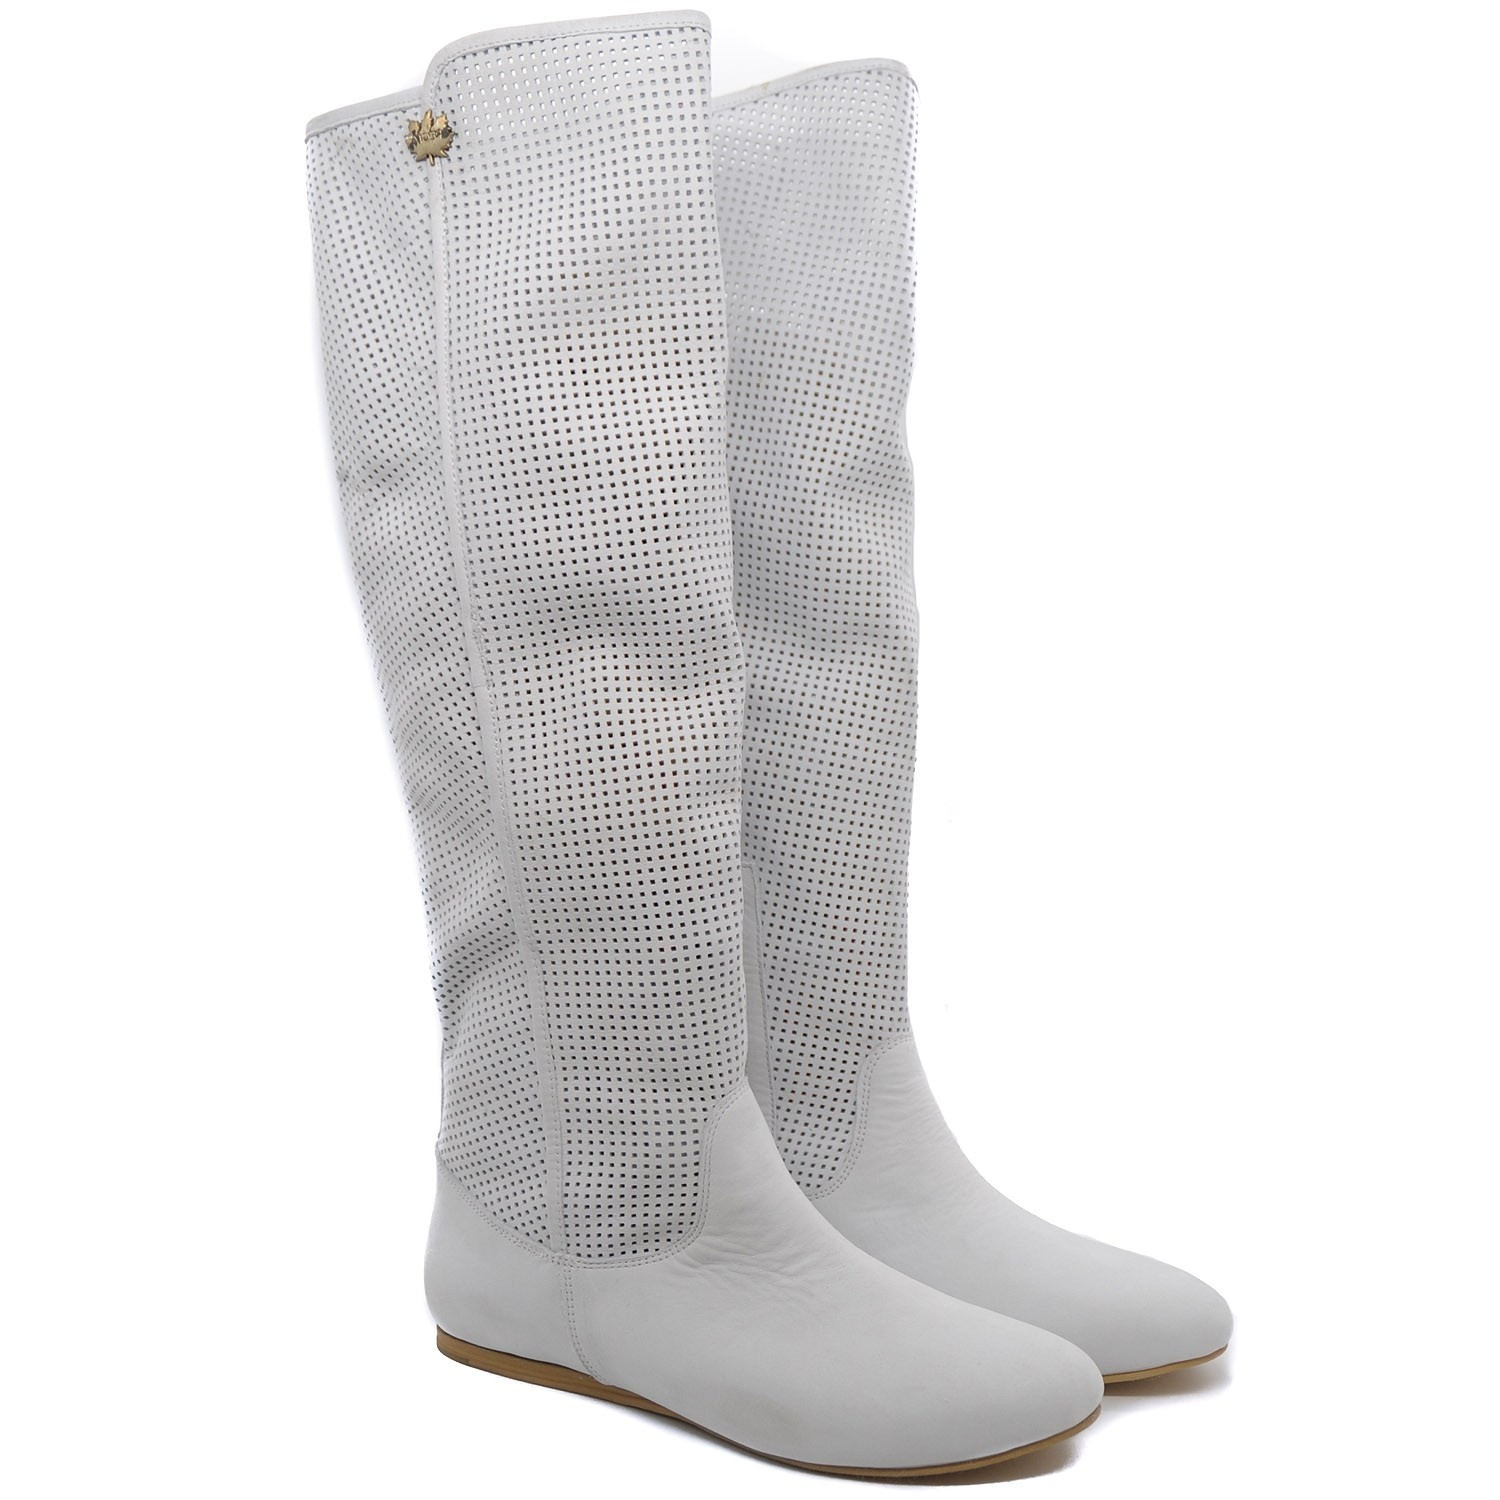 Pegia White Knee High Leather Boots with a Patterned Cut Out Design and Small Side Zip